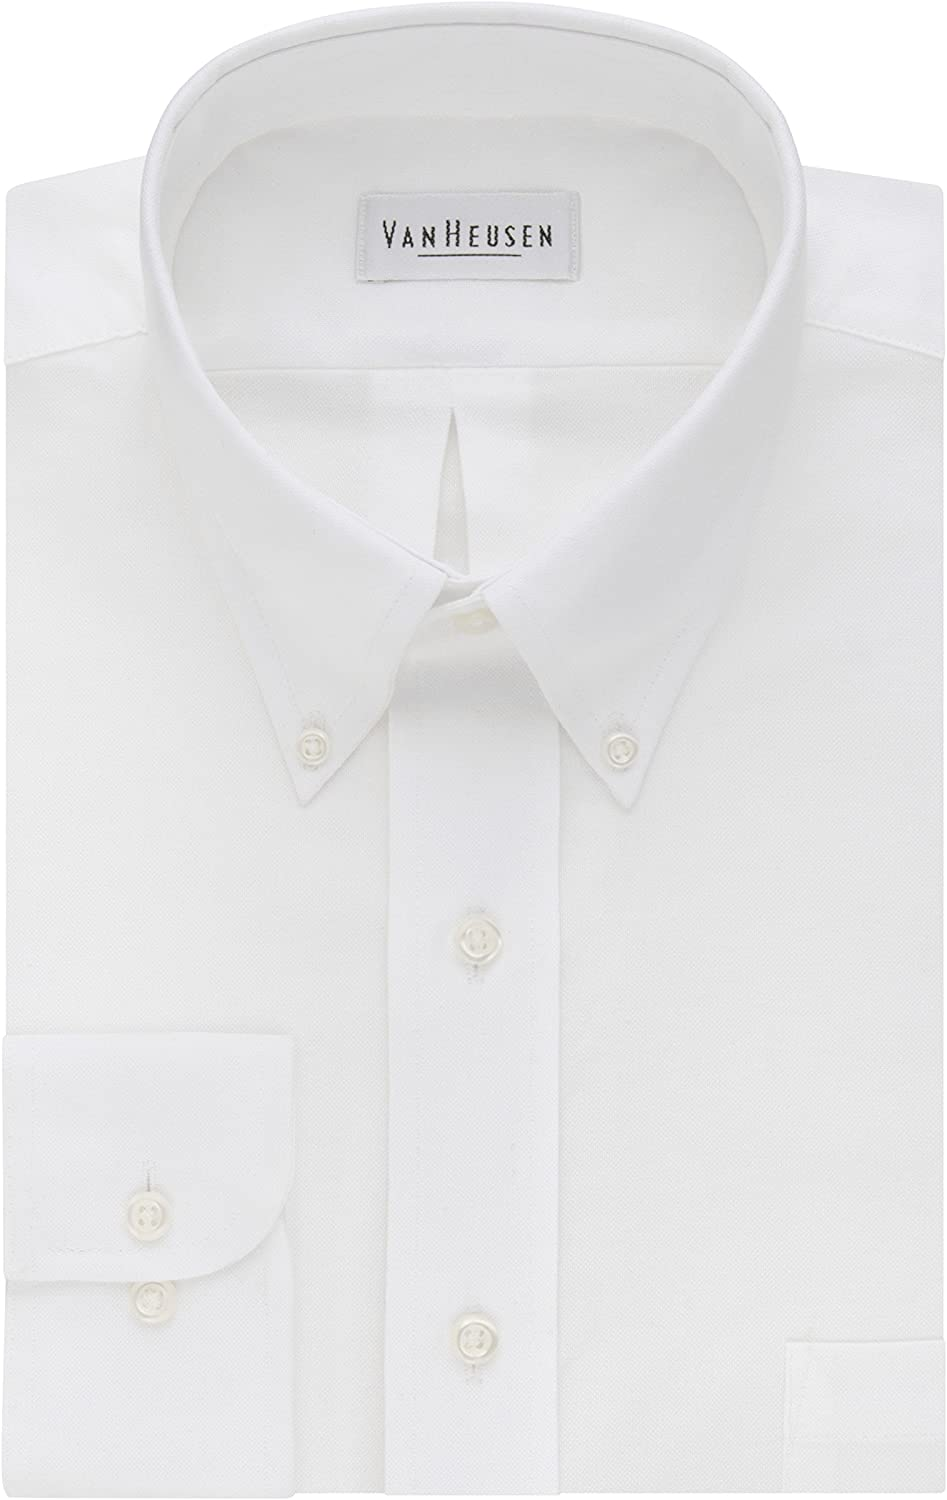 The Best White Office Shirts For Men